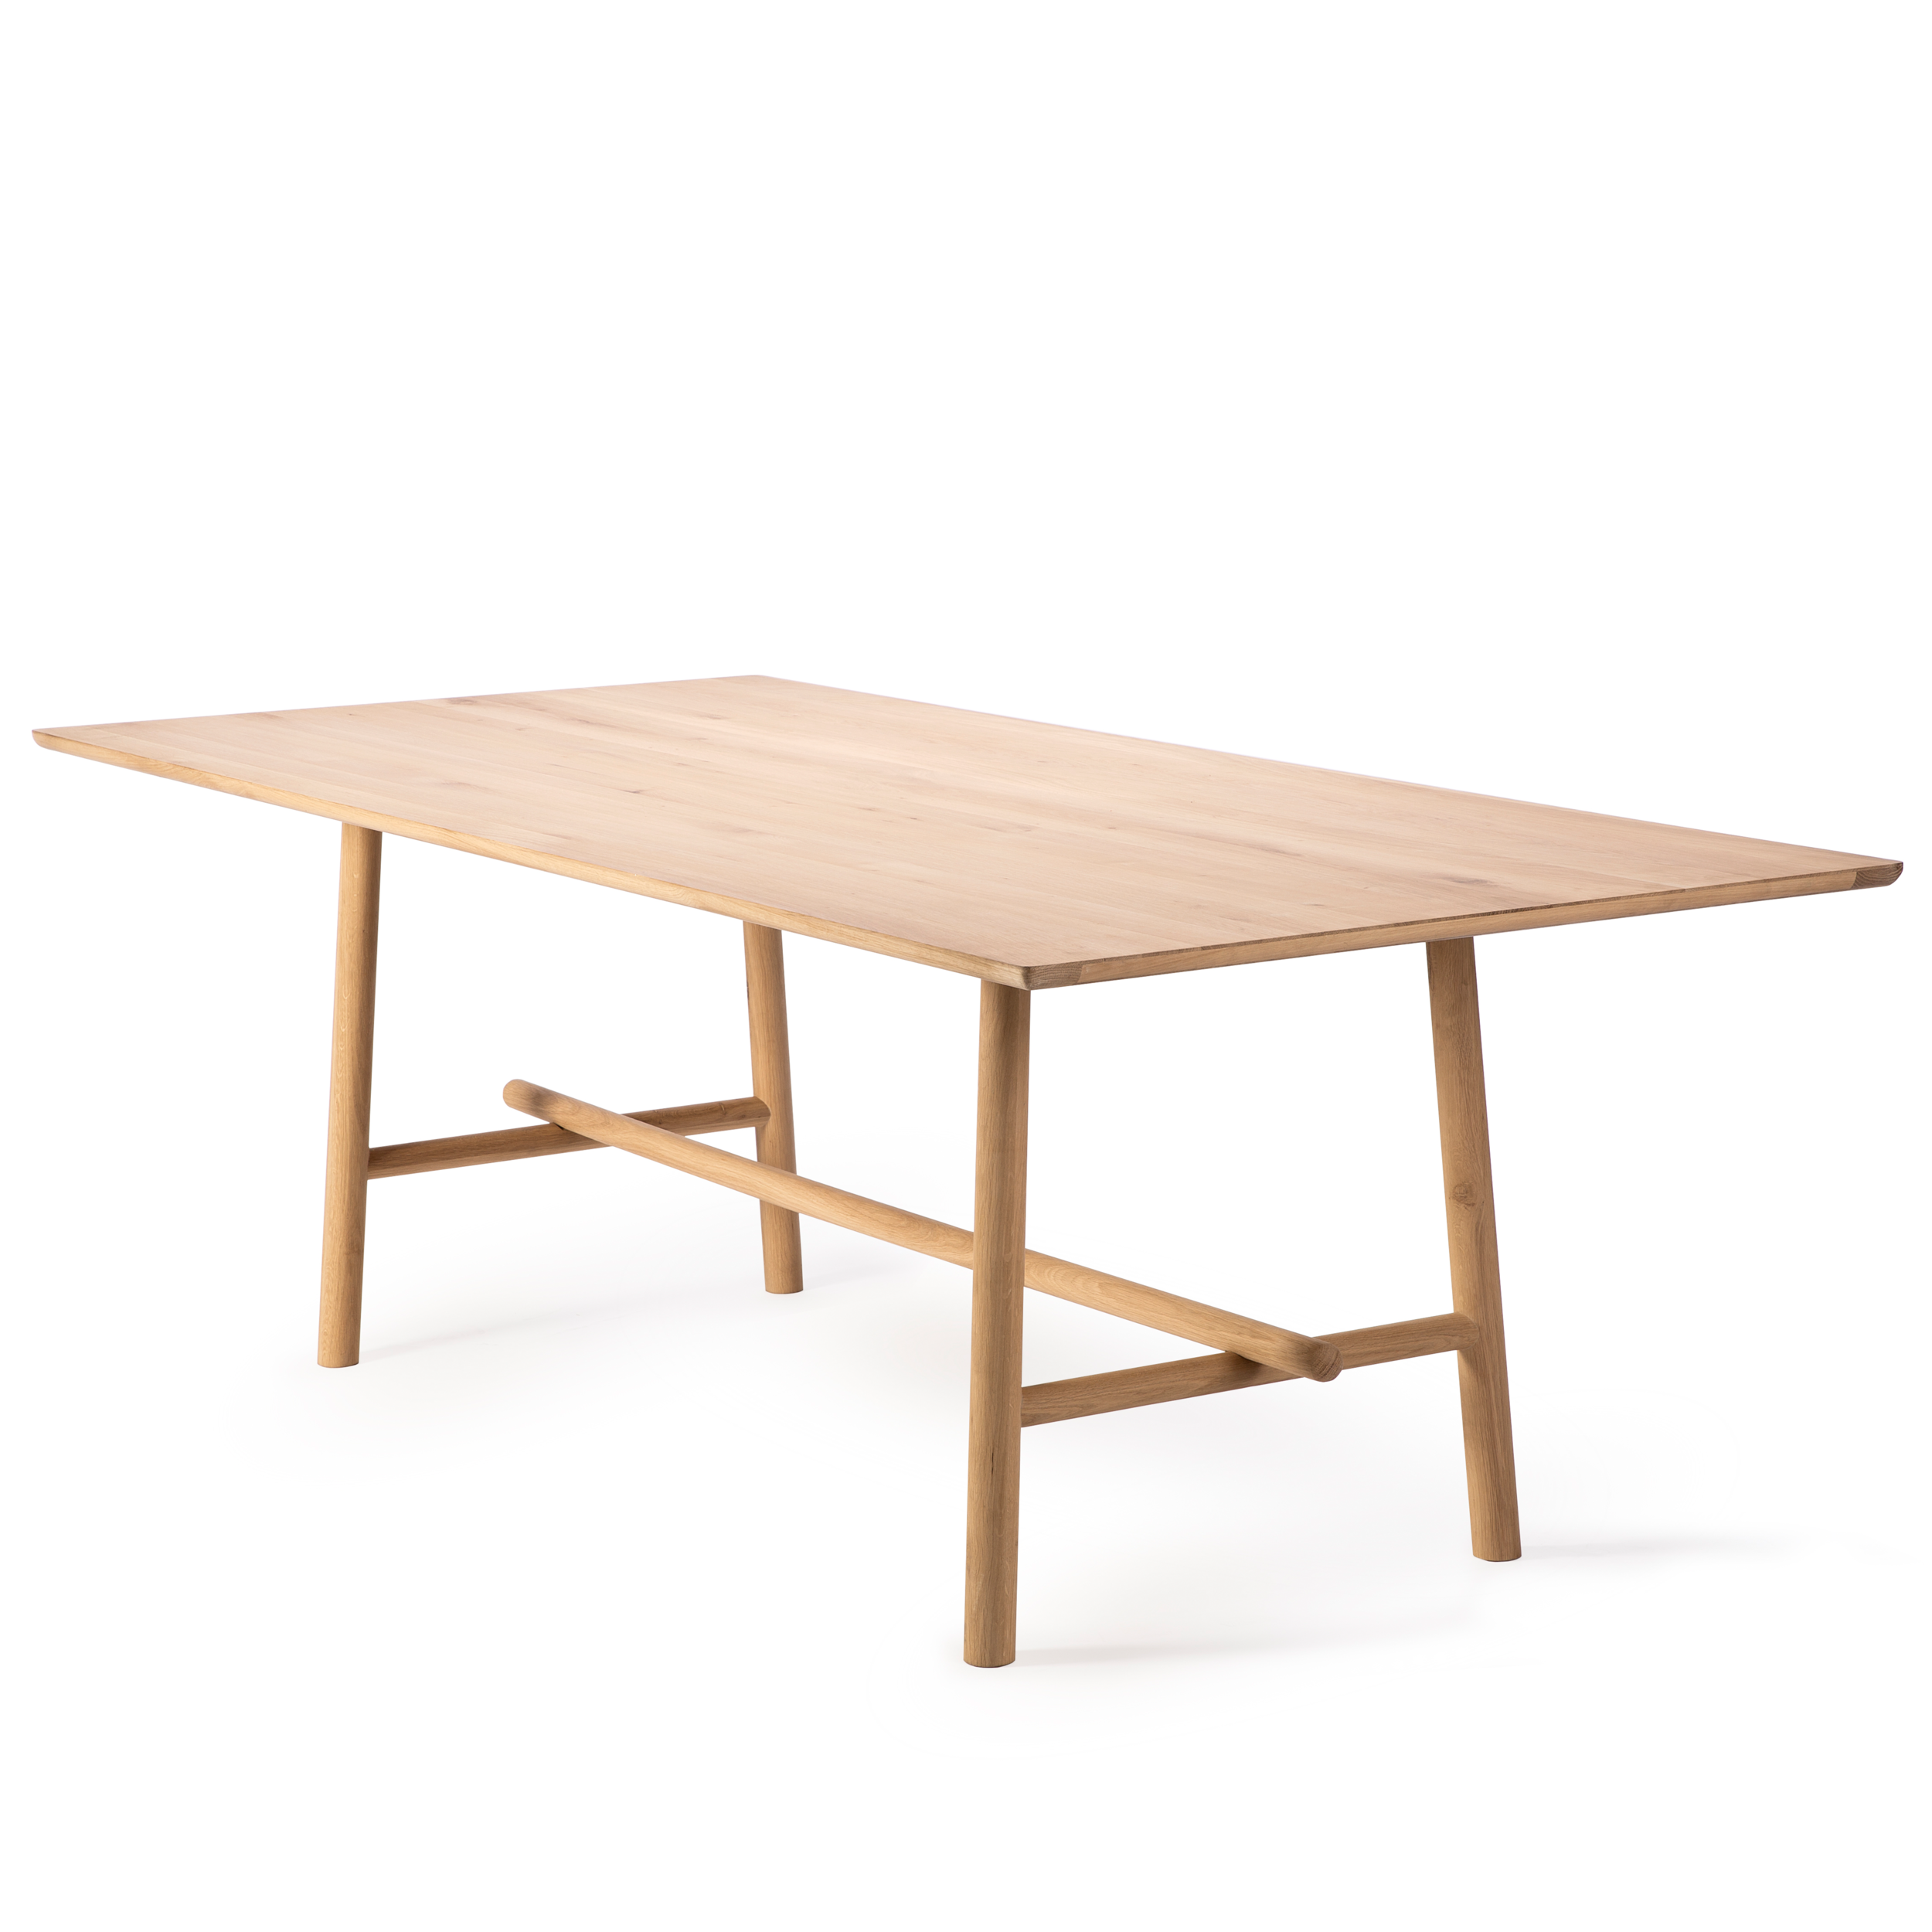 50002 Oak Profile Dining Table (2).jpg.png